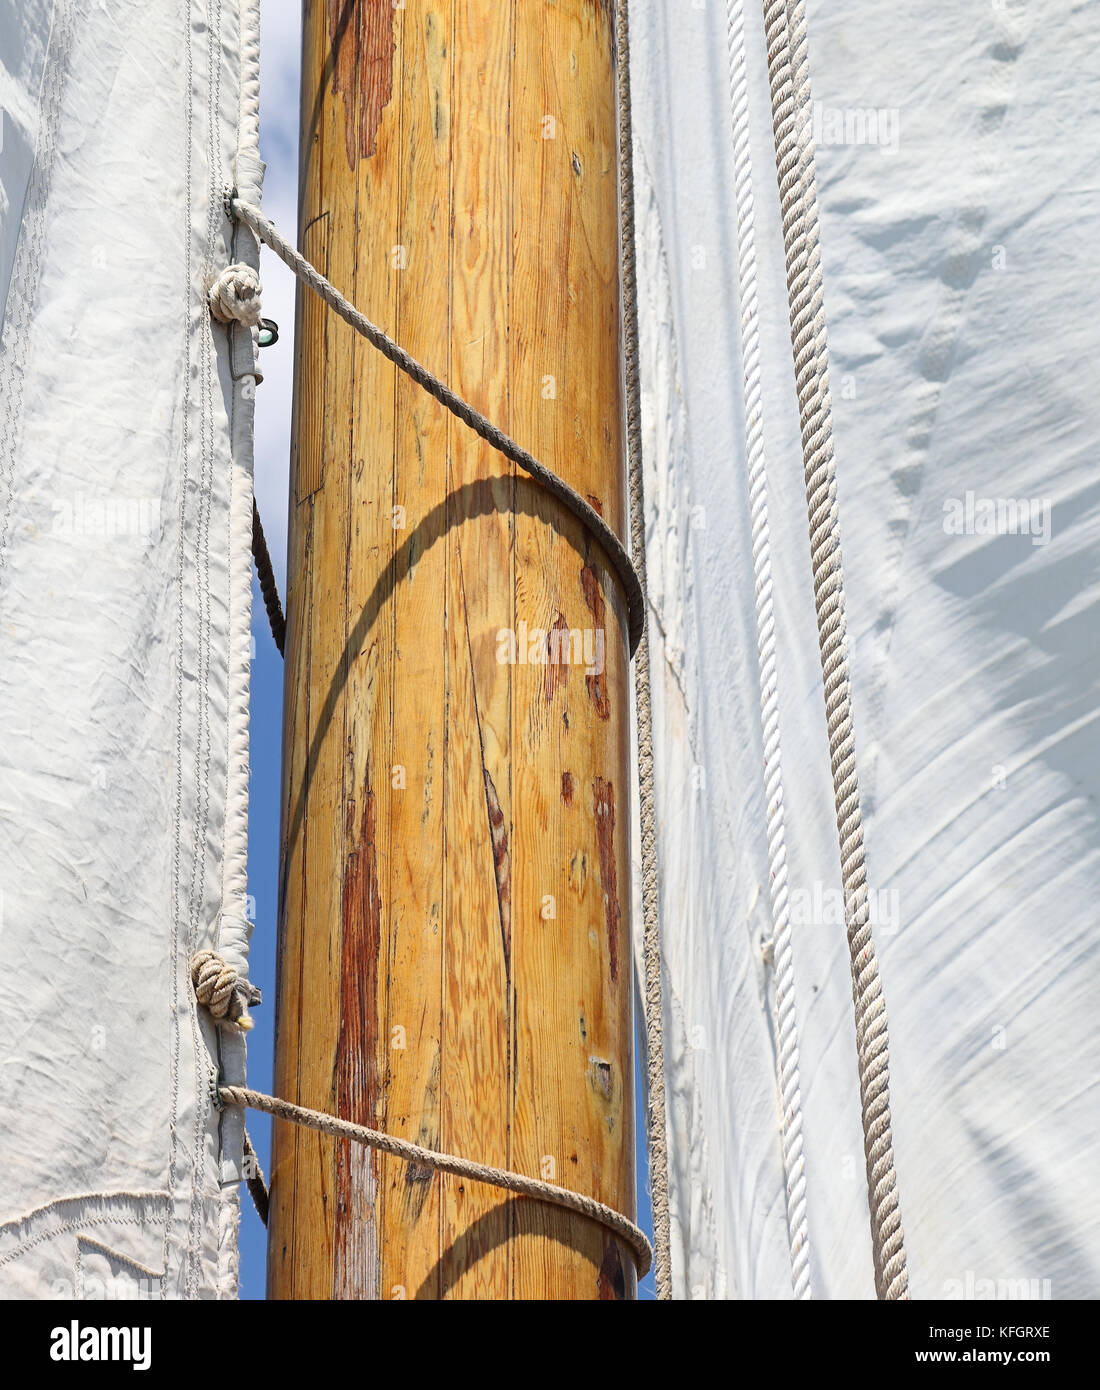 Sails, mast and rigging - Stock Image